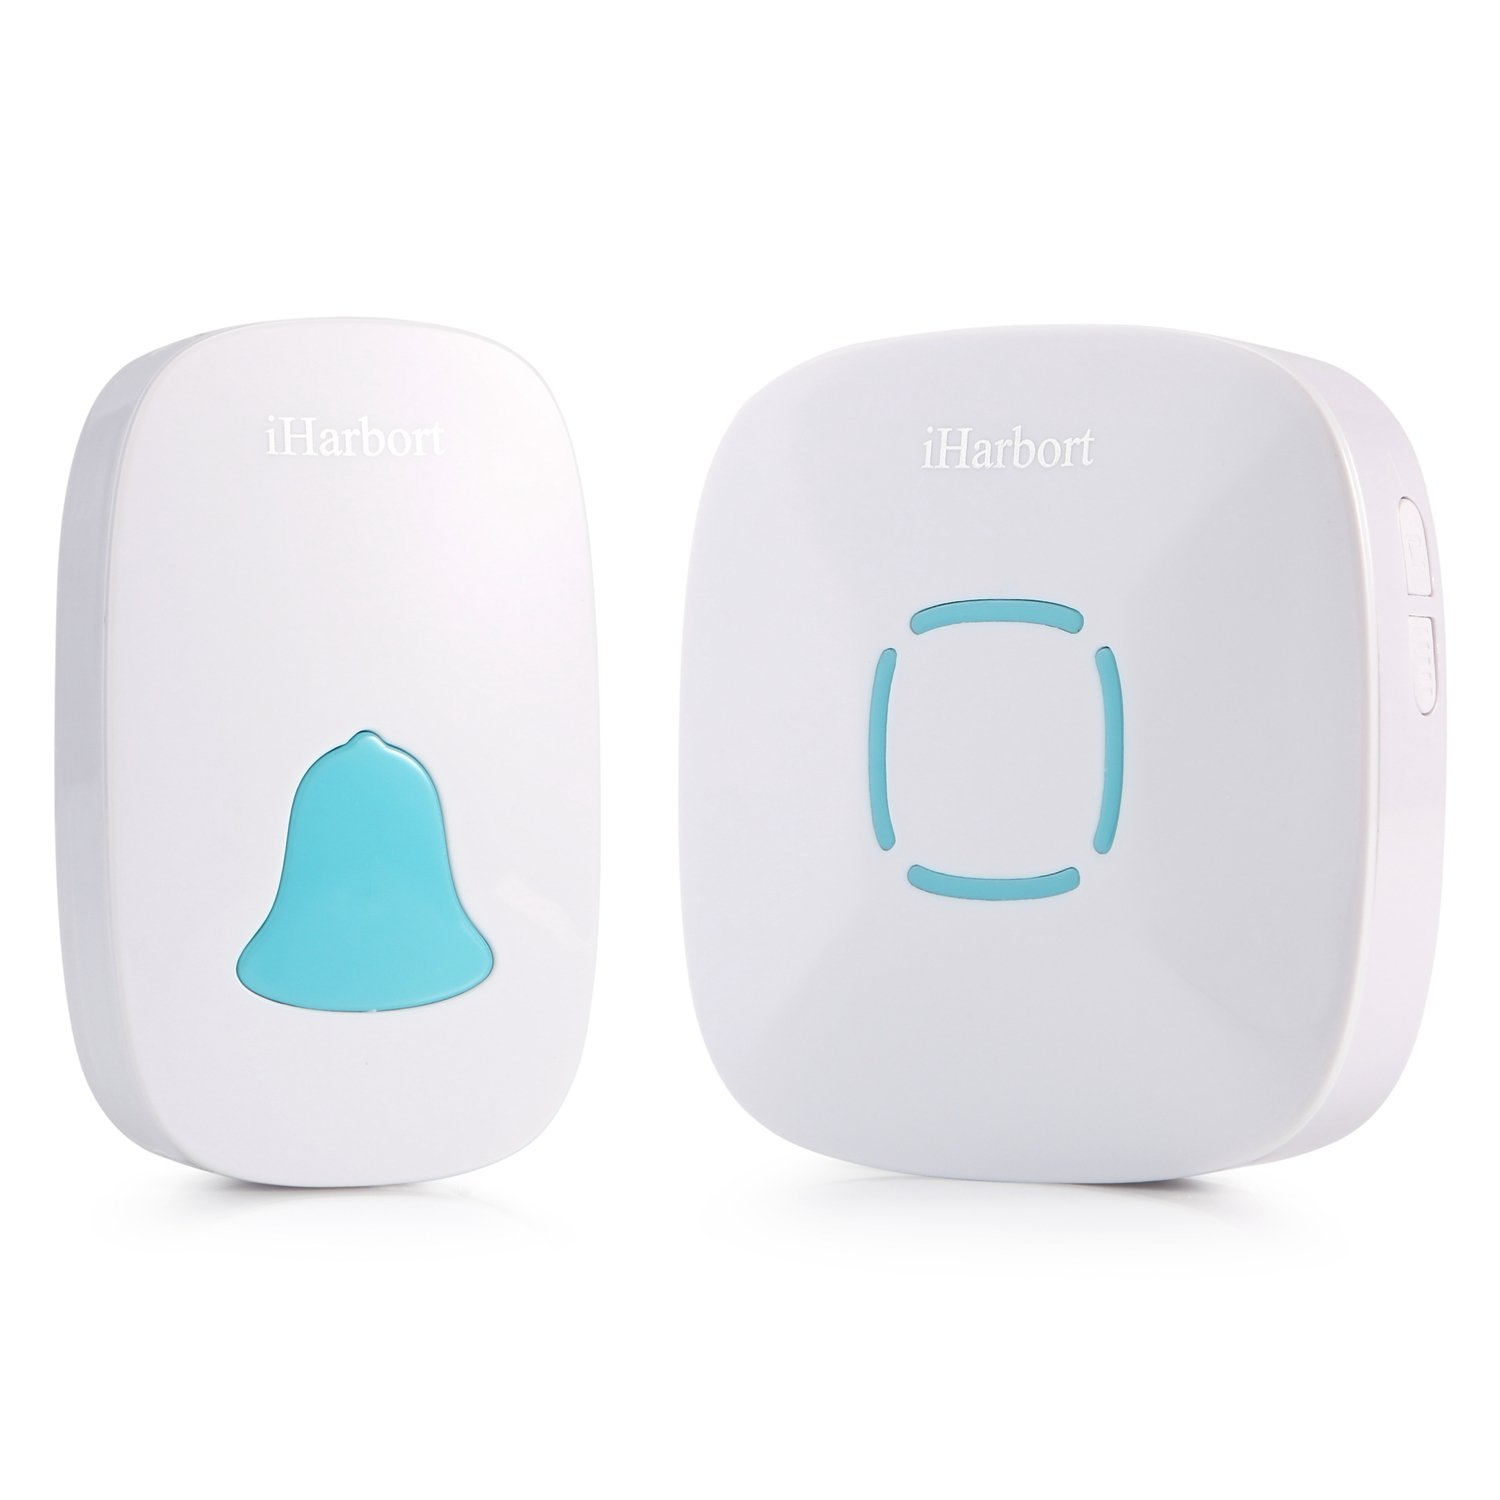 iHarbort Waterproof Wireless Doorbell kit at 1000 ft Range 280 meters with 36 Chimes no battery required for receiver White